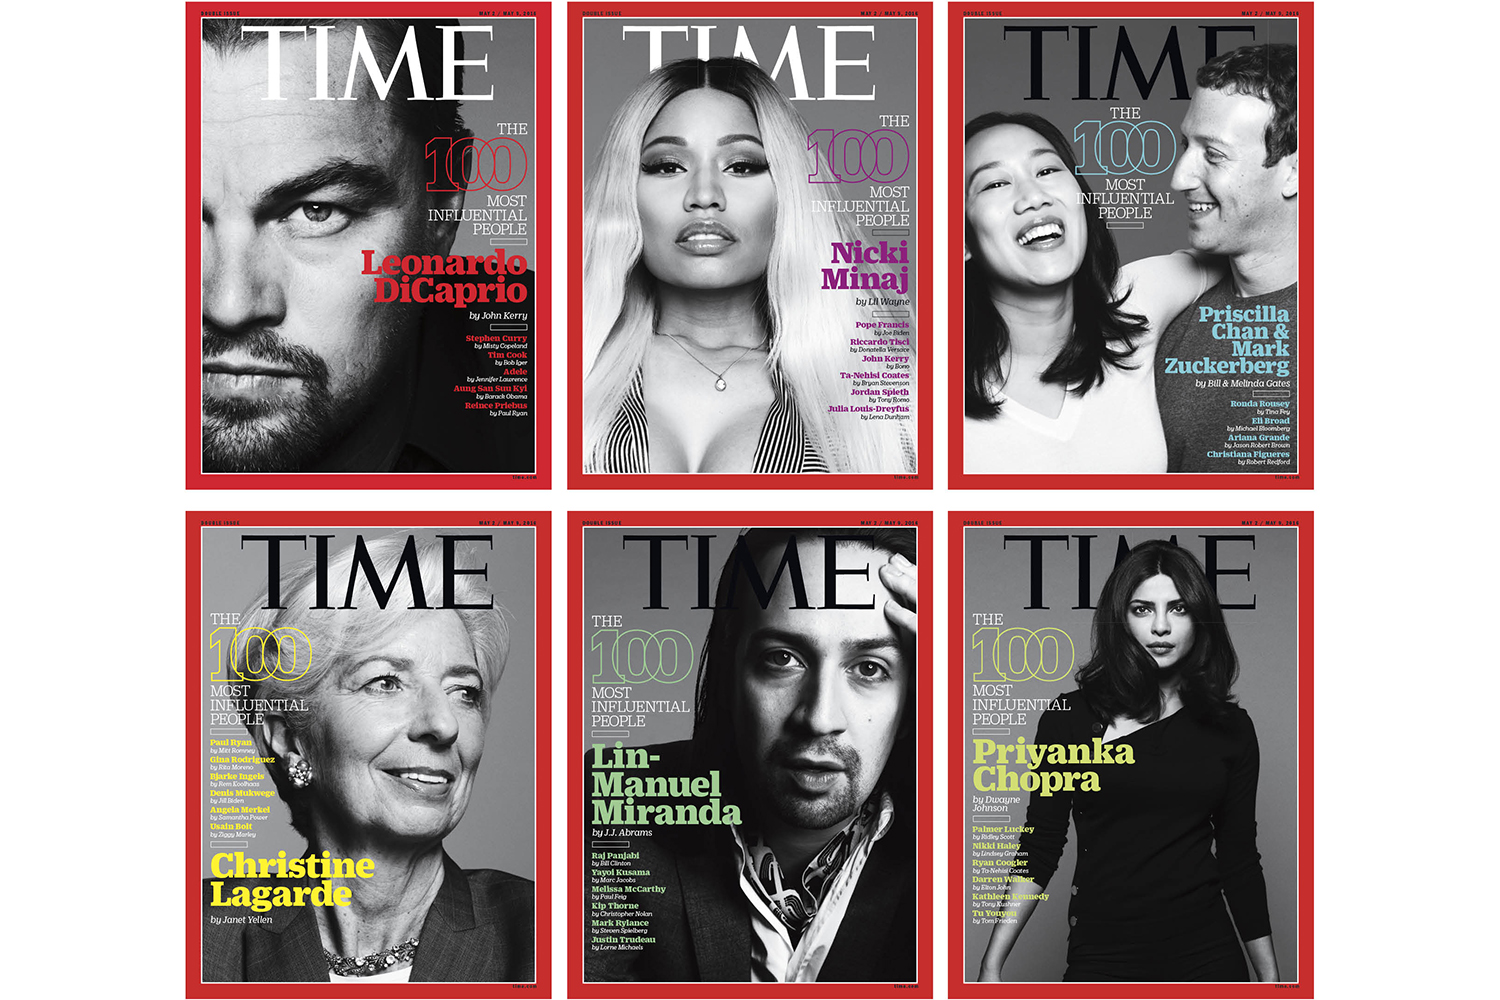 most influential person Some of the people mentioned on the time 100 list include president donald trump, oprah winfrey, jimmy kimmel, meghan markle and more.